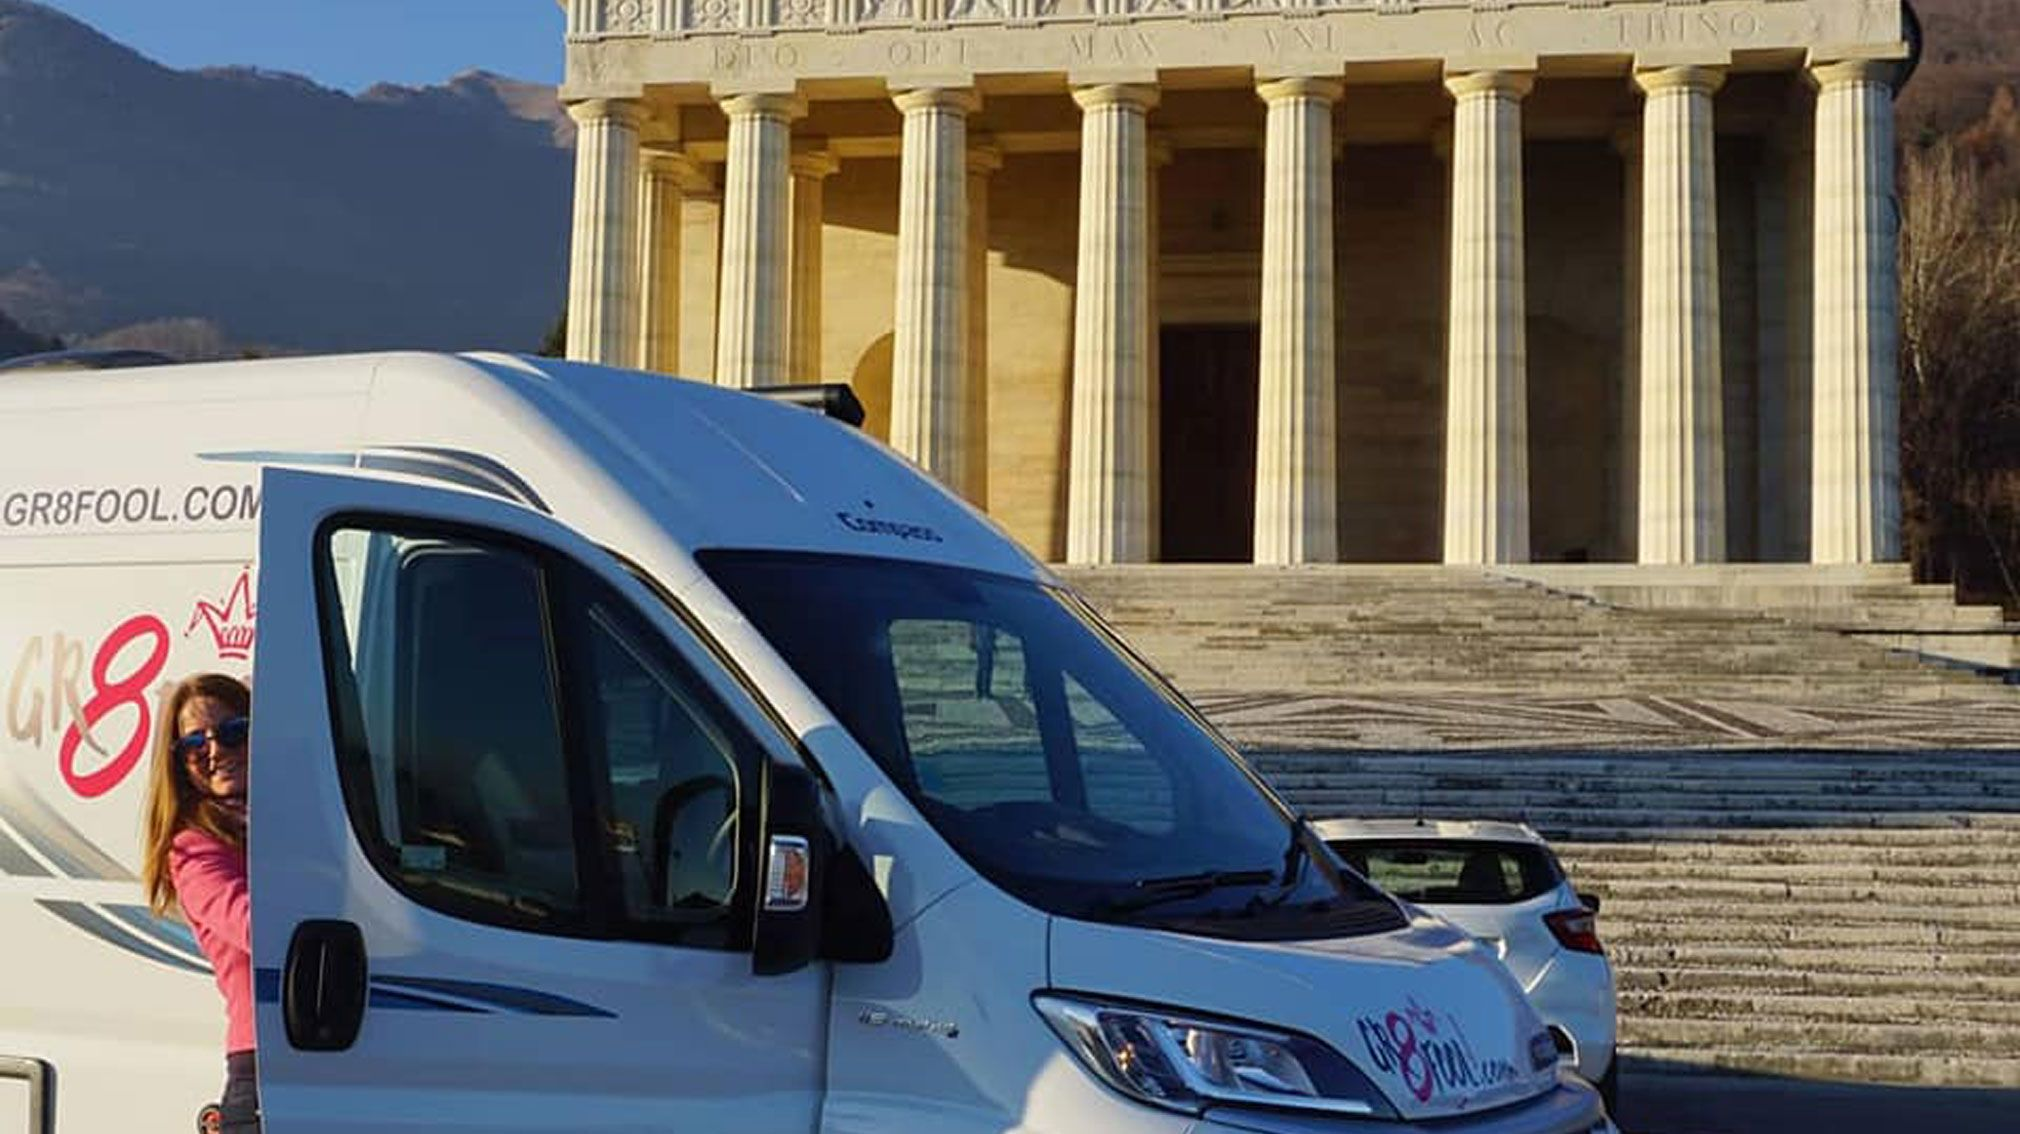 TheGr8Fool with the Compass Avantgarde campervan in front of Roman ruins